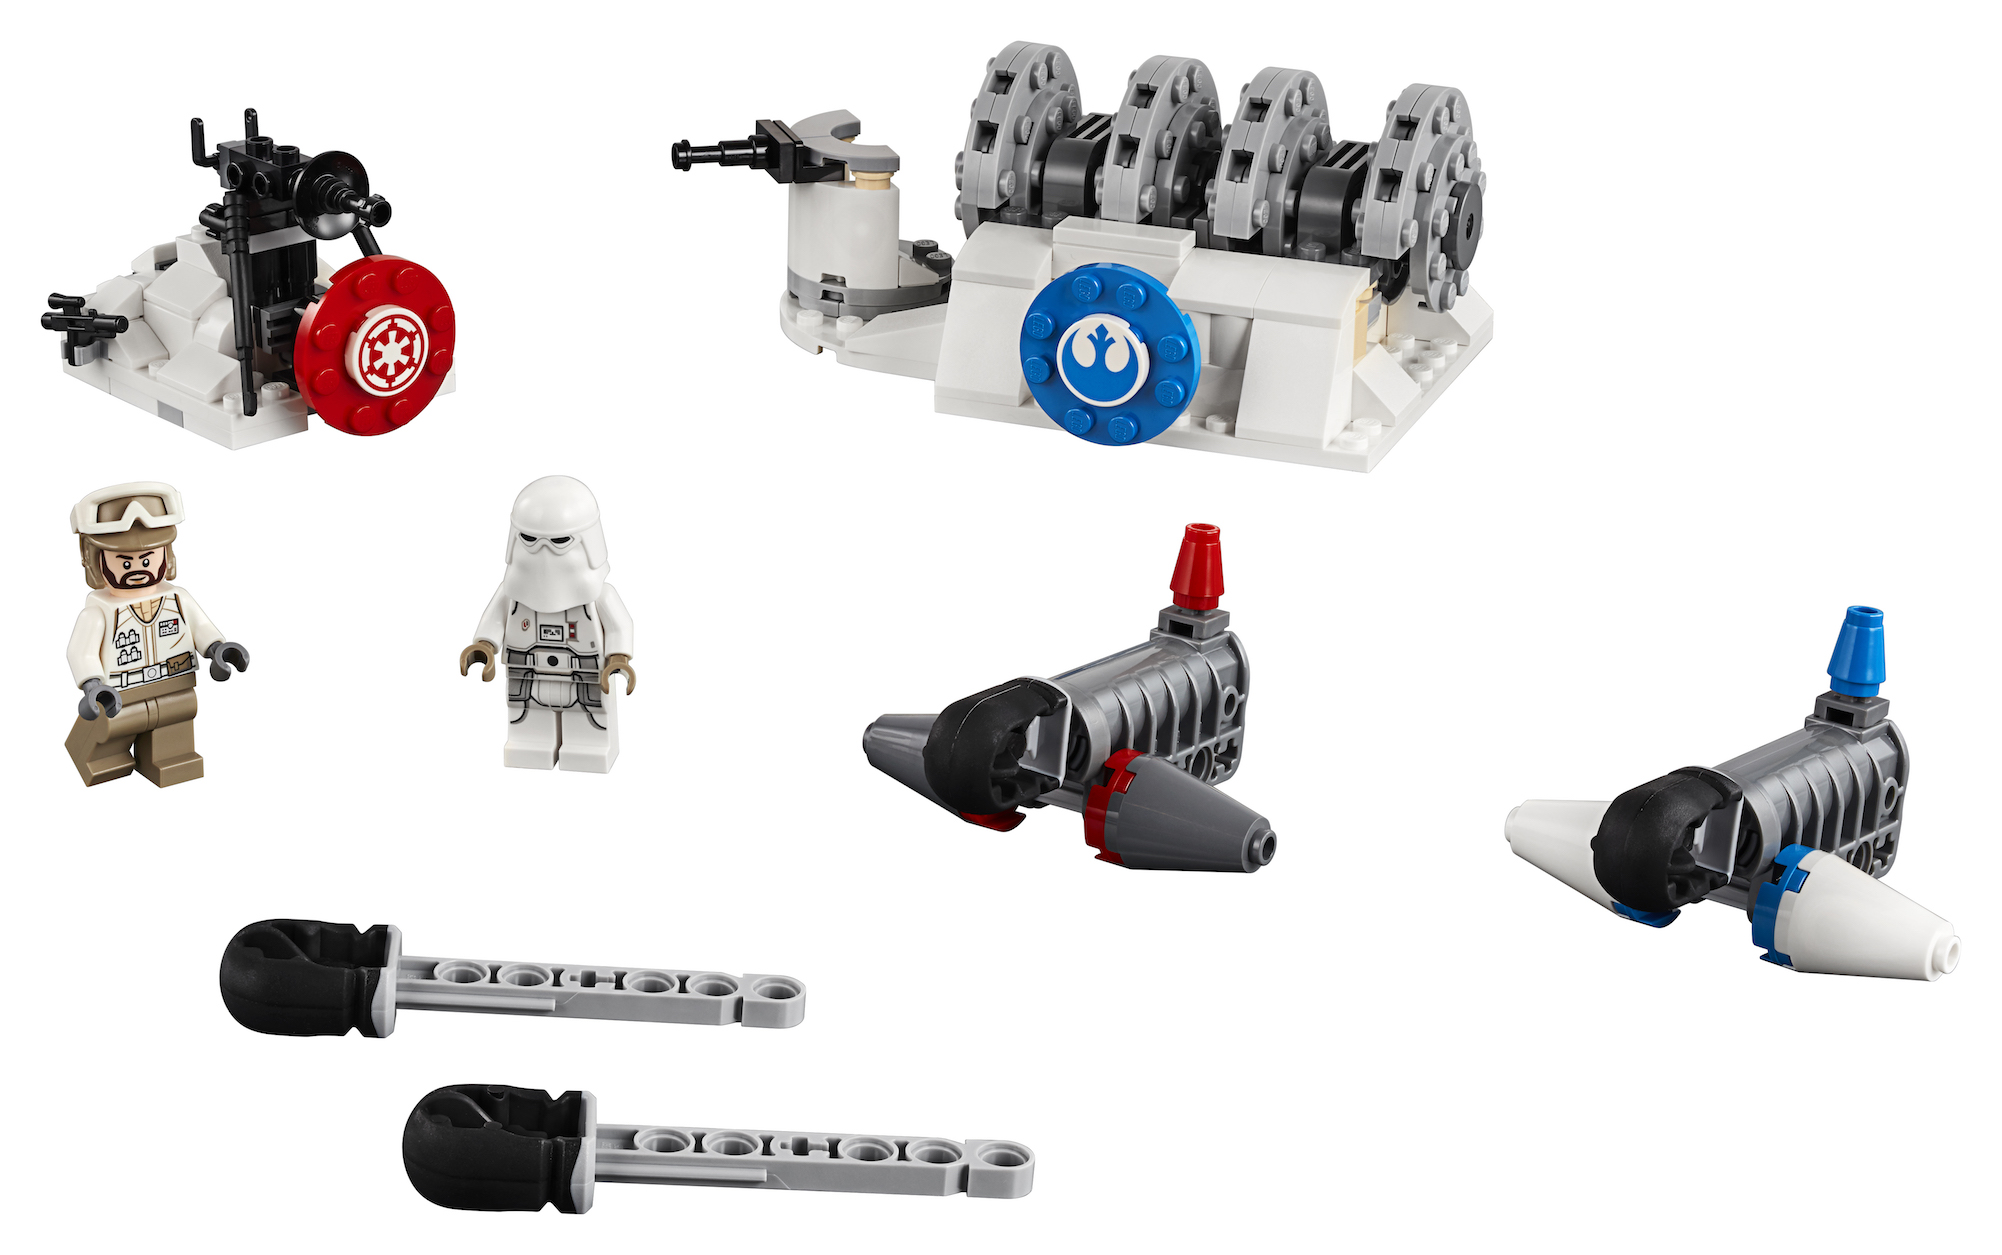 TESB Action Battle Hoth Generator Attack Lego Set 4